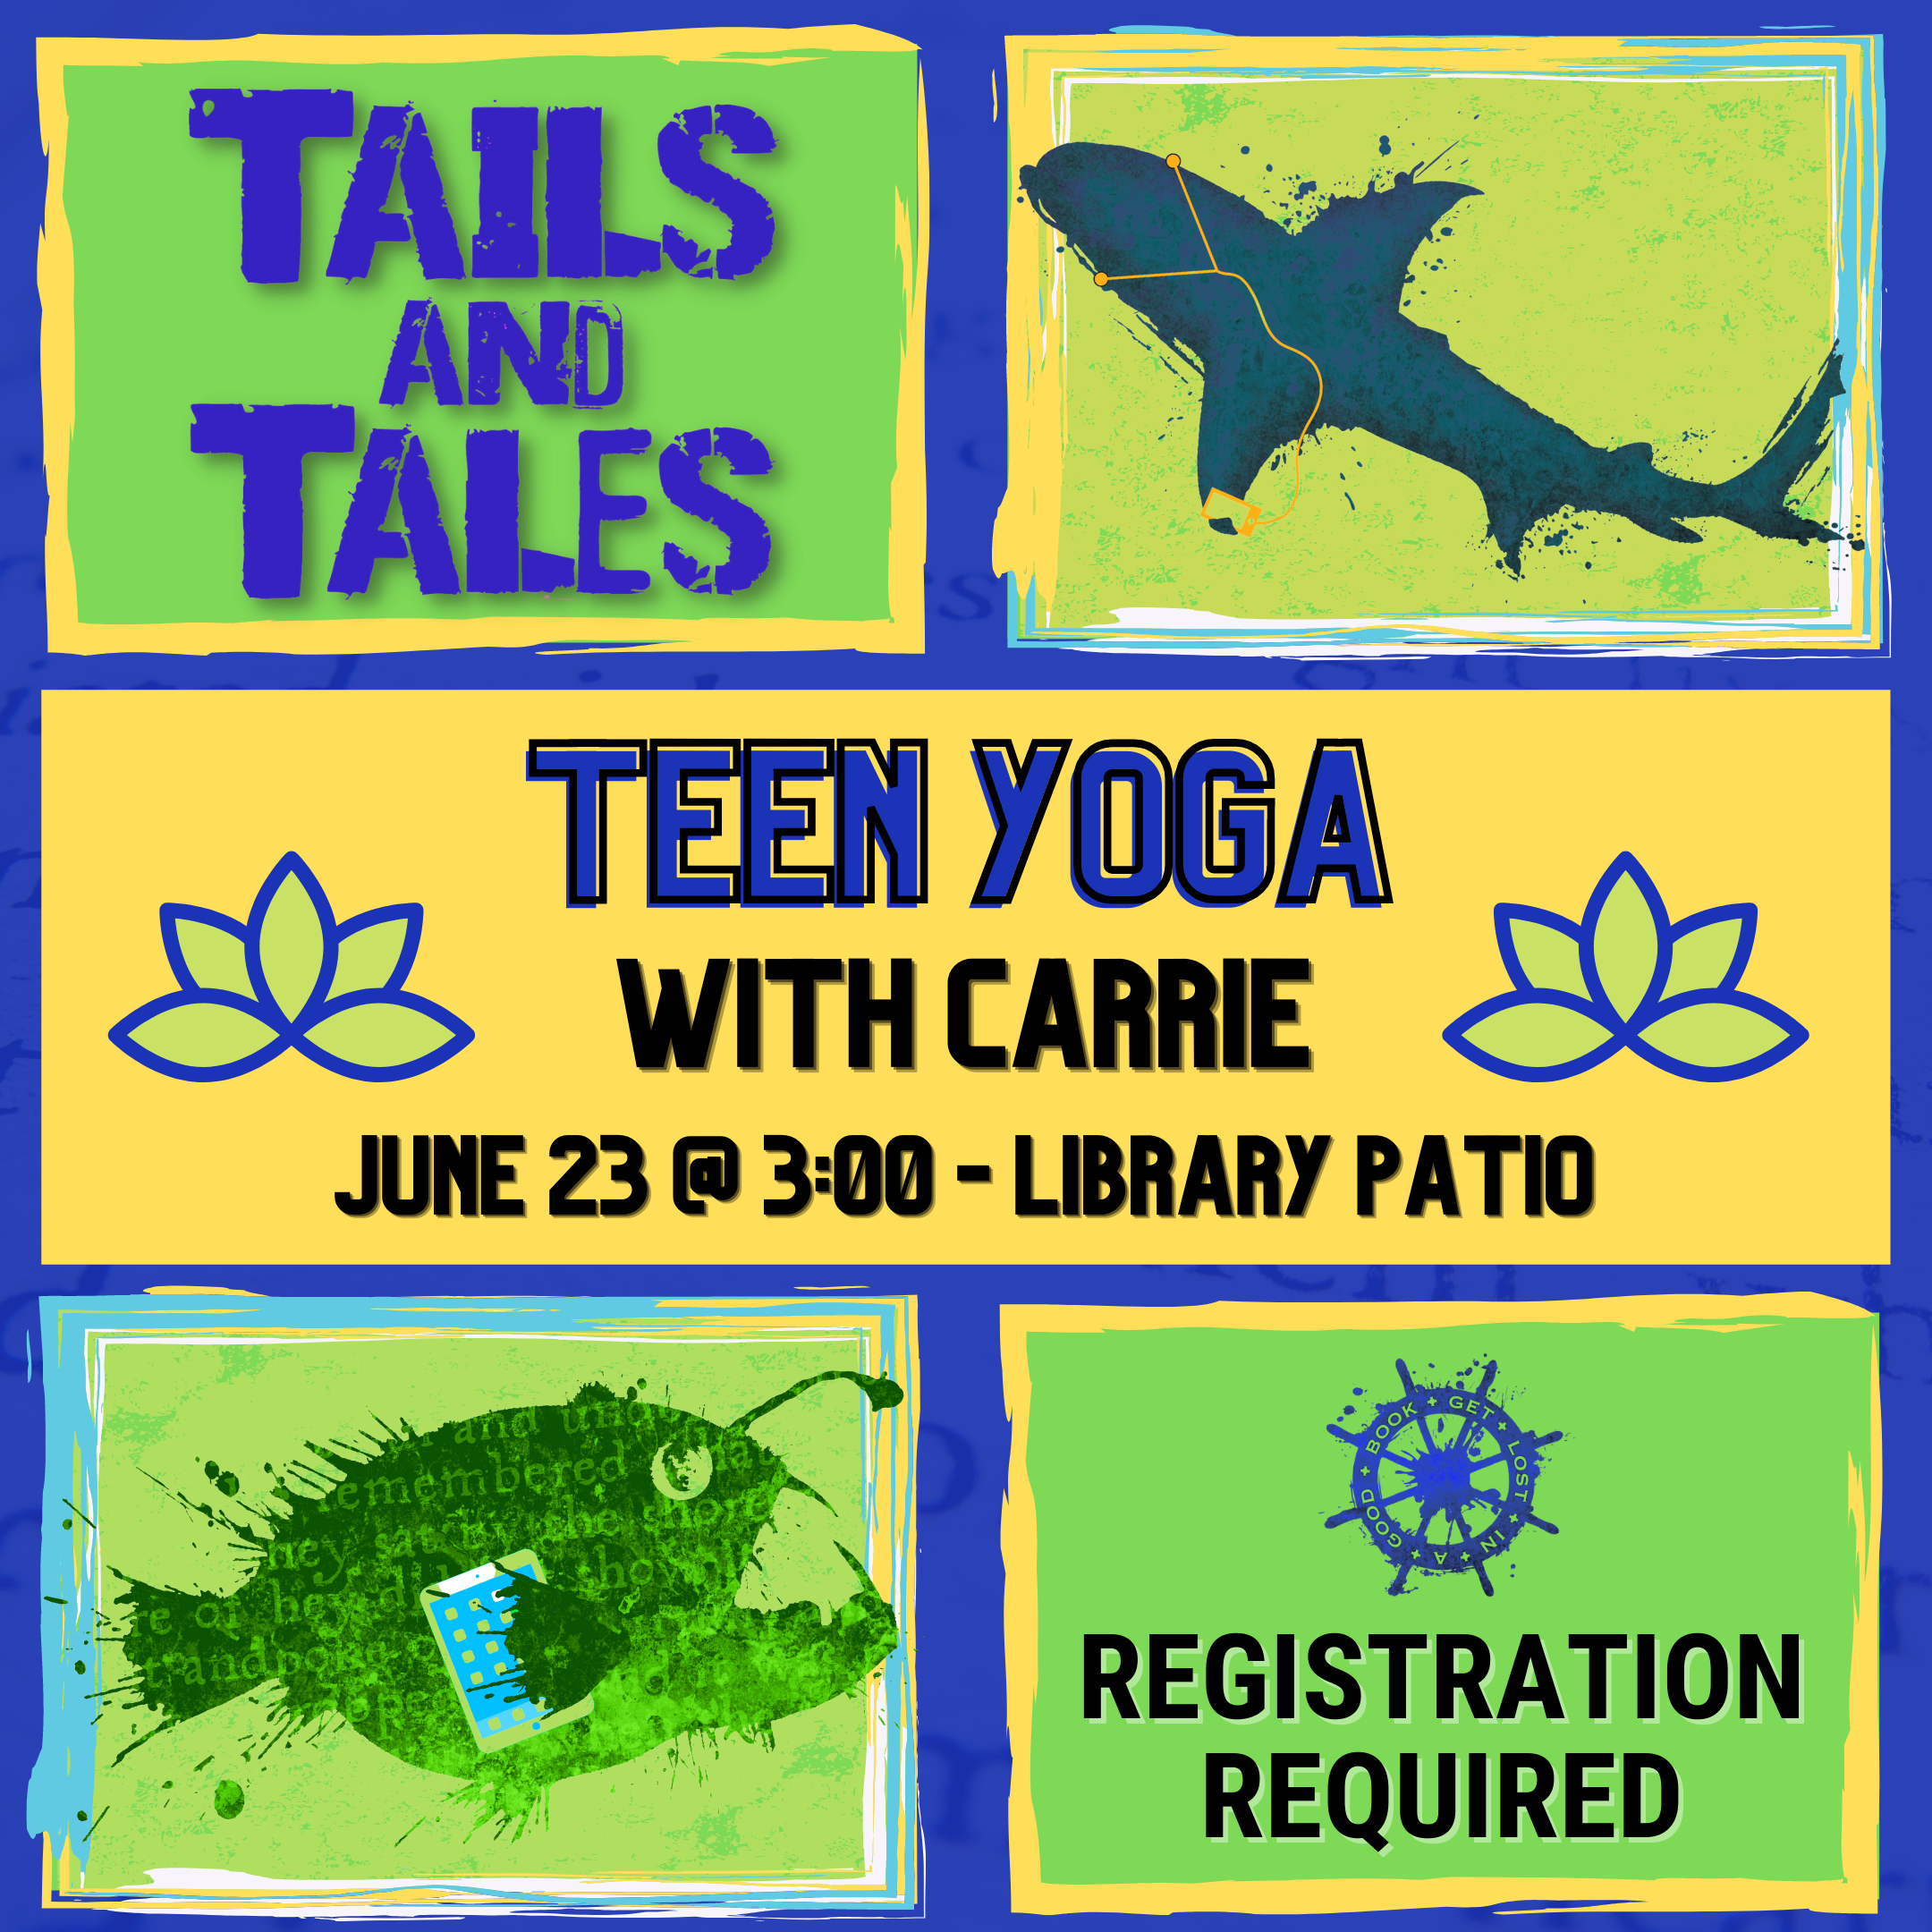 Teen Yoga with Carrie